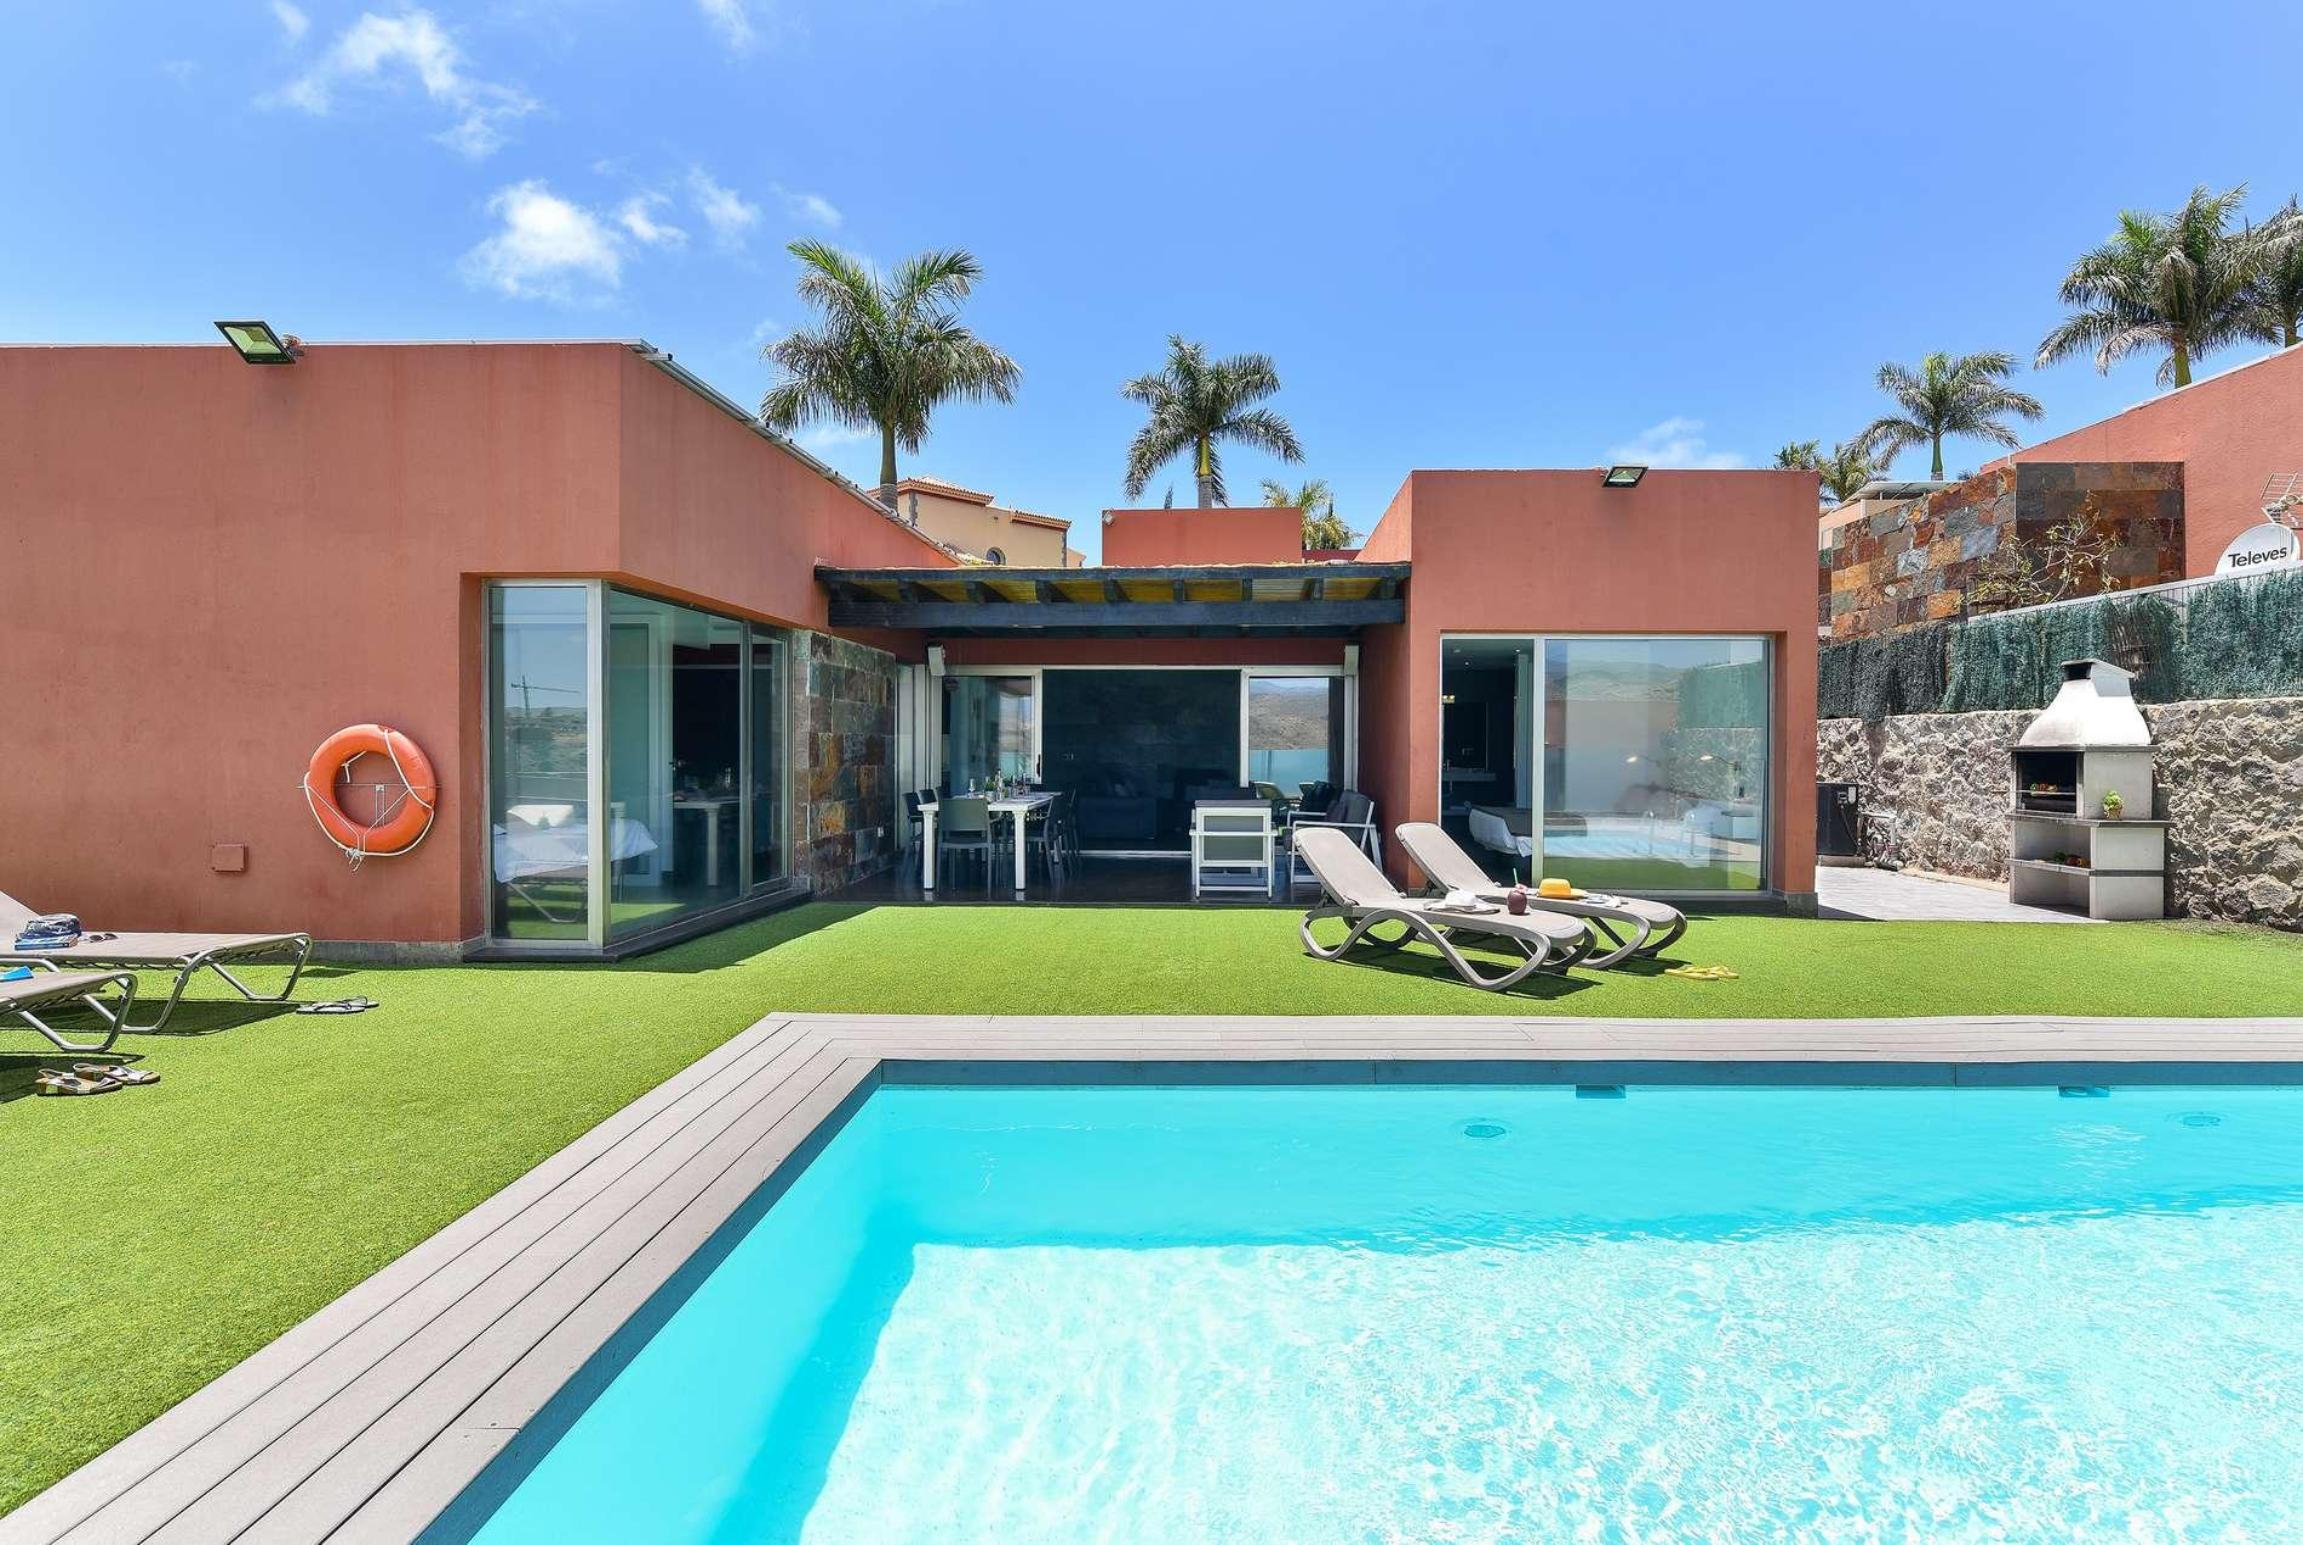 Read more about Par 4 Villa 20 villa